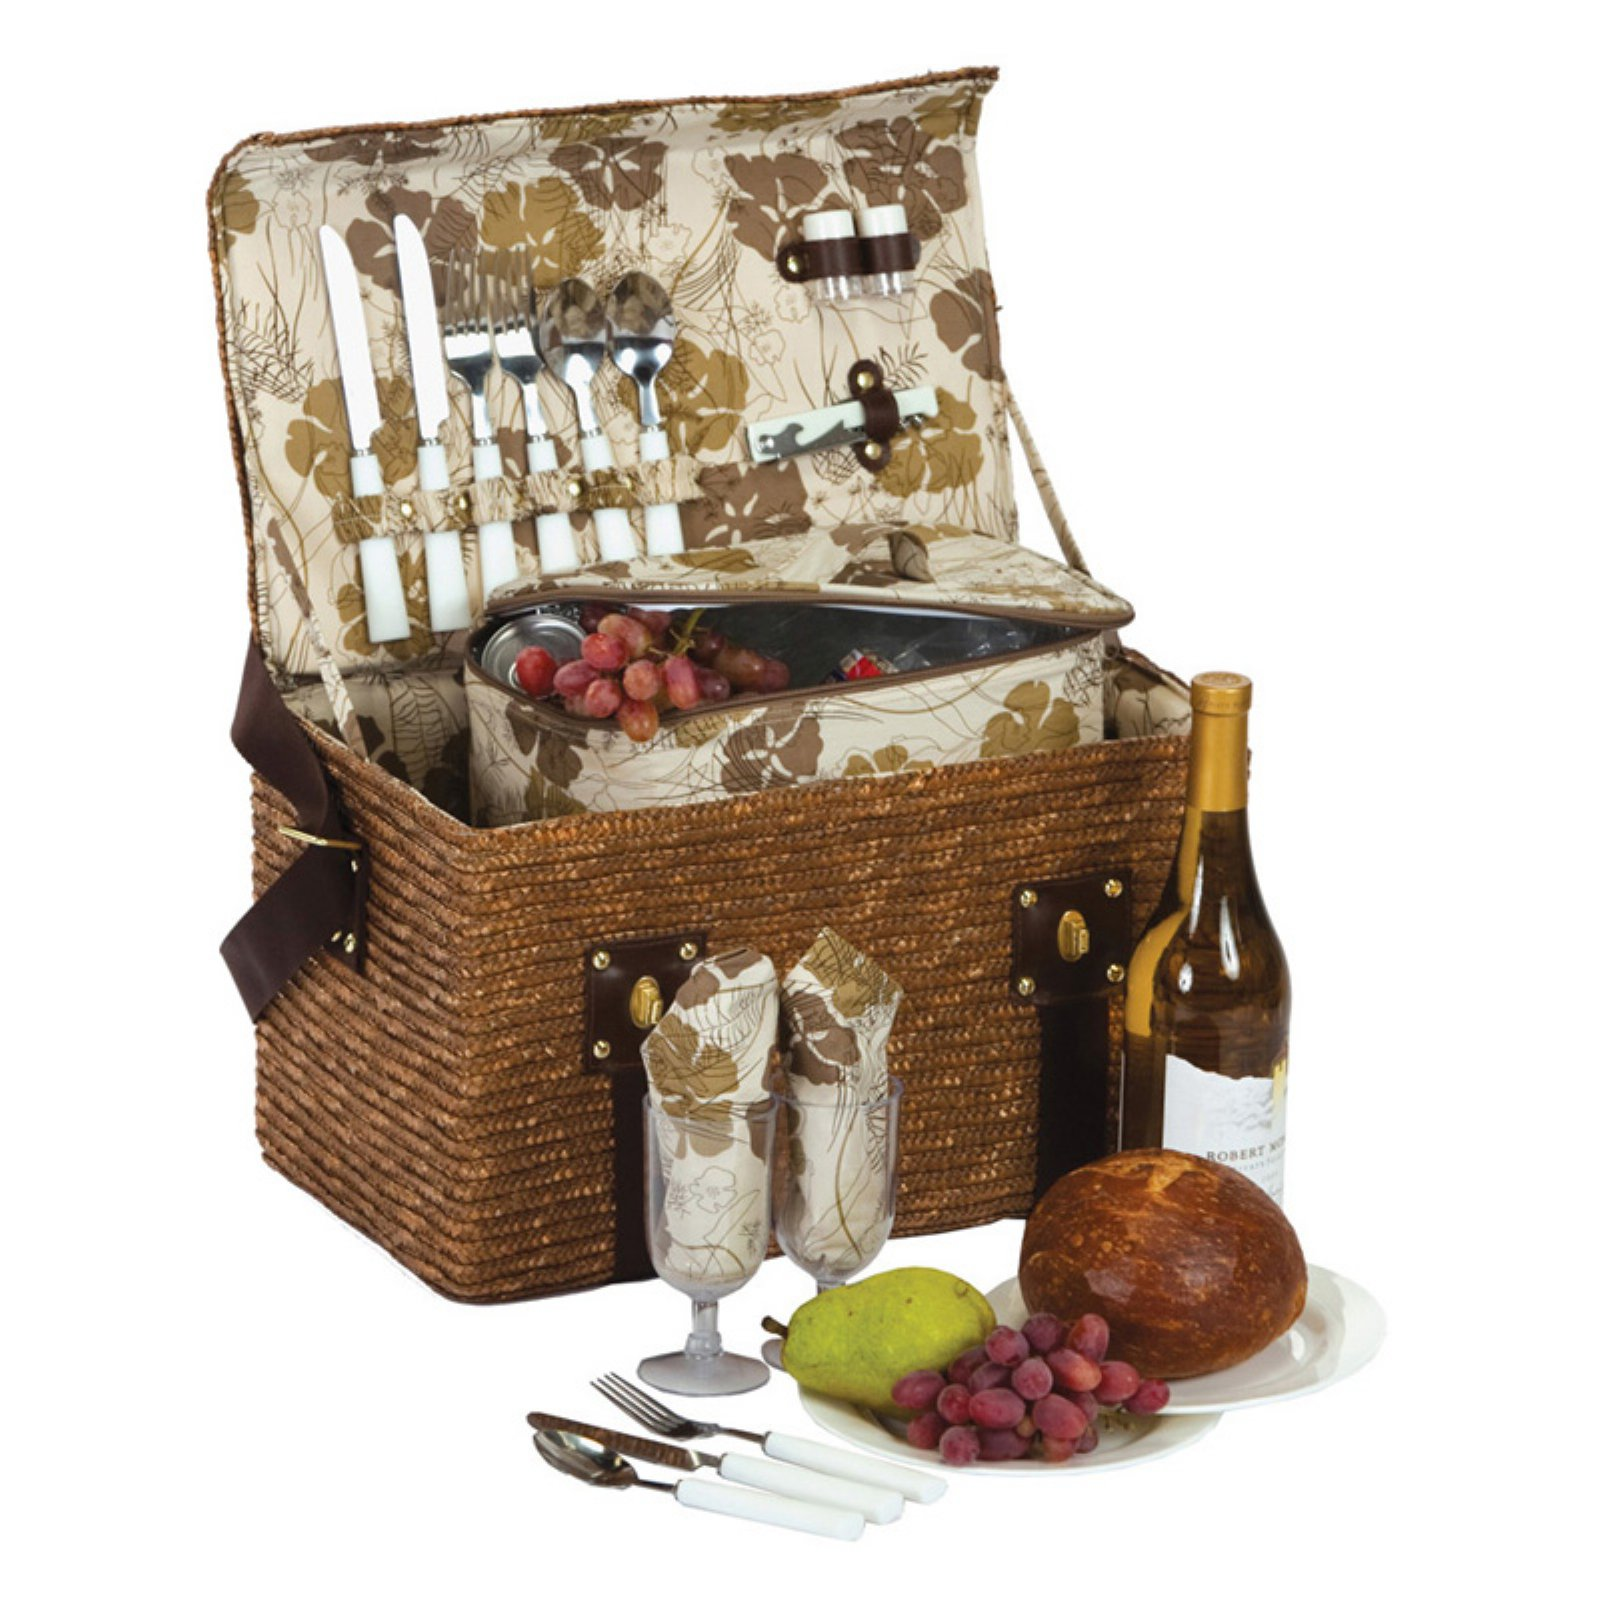 Picnic Plus Woodstock 2 Person Picnic Basket - Fern Lining